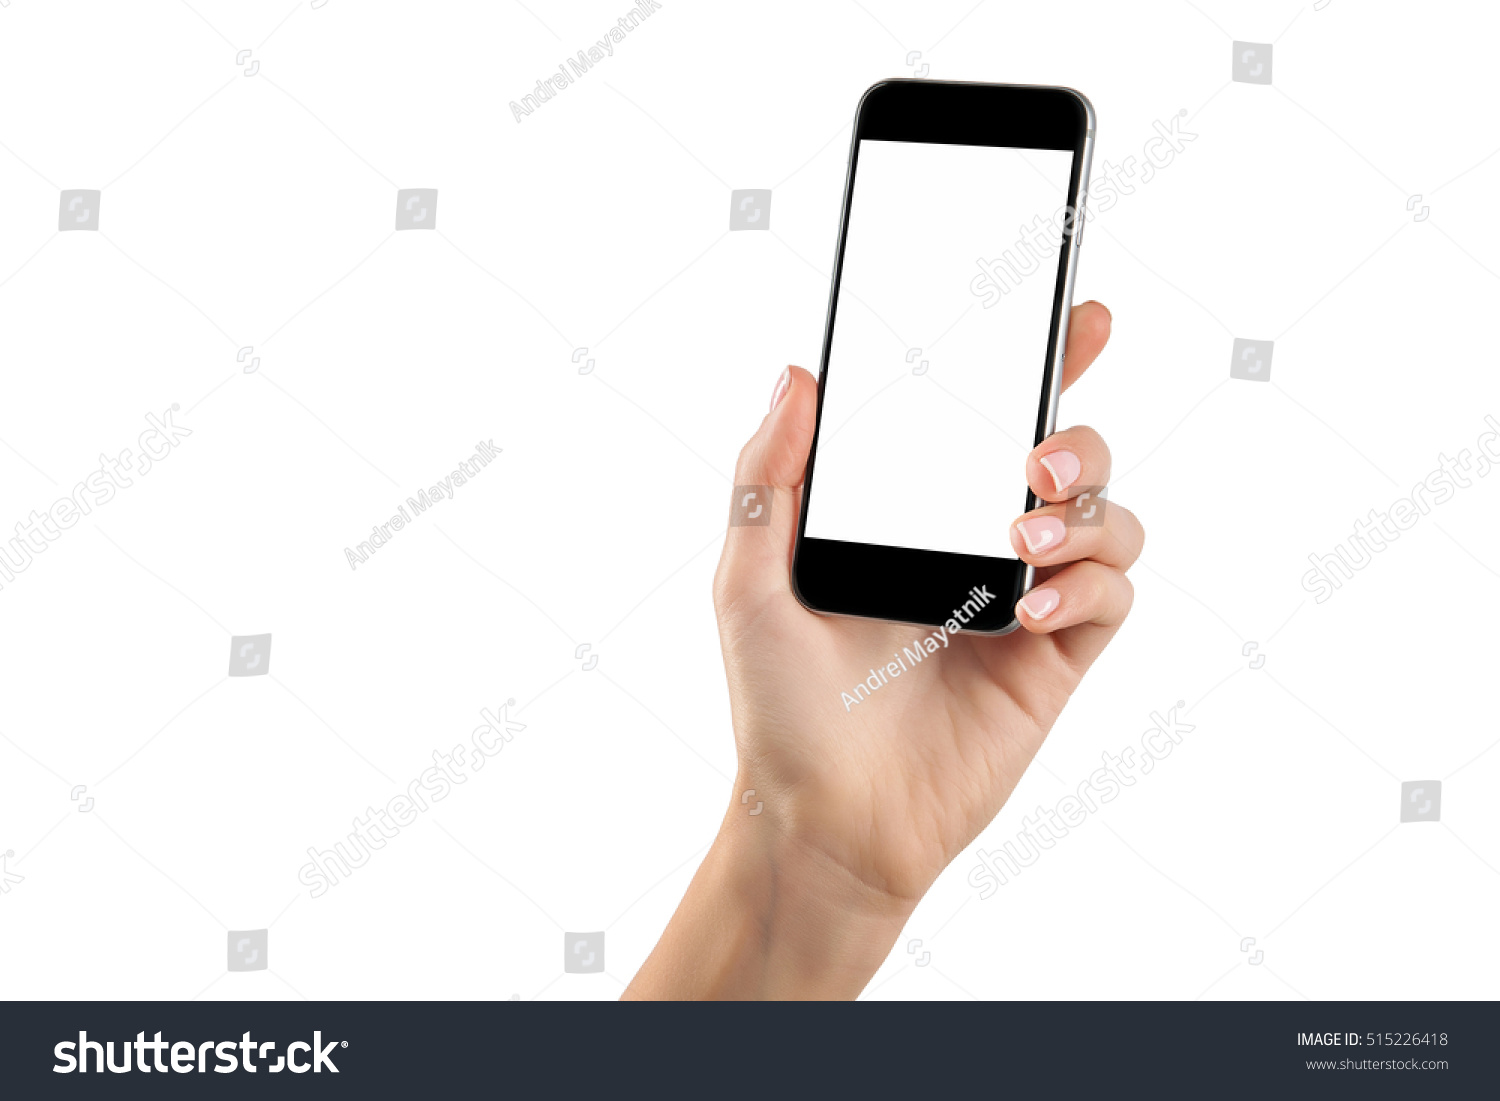 Female hand holding black cellphone with white screen at isolated background. #515226418